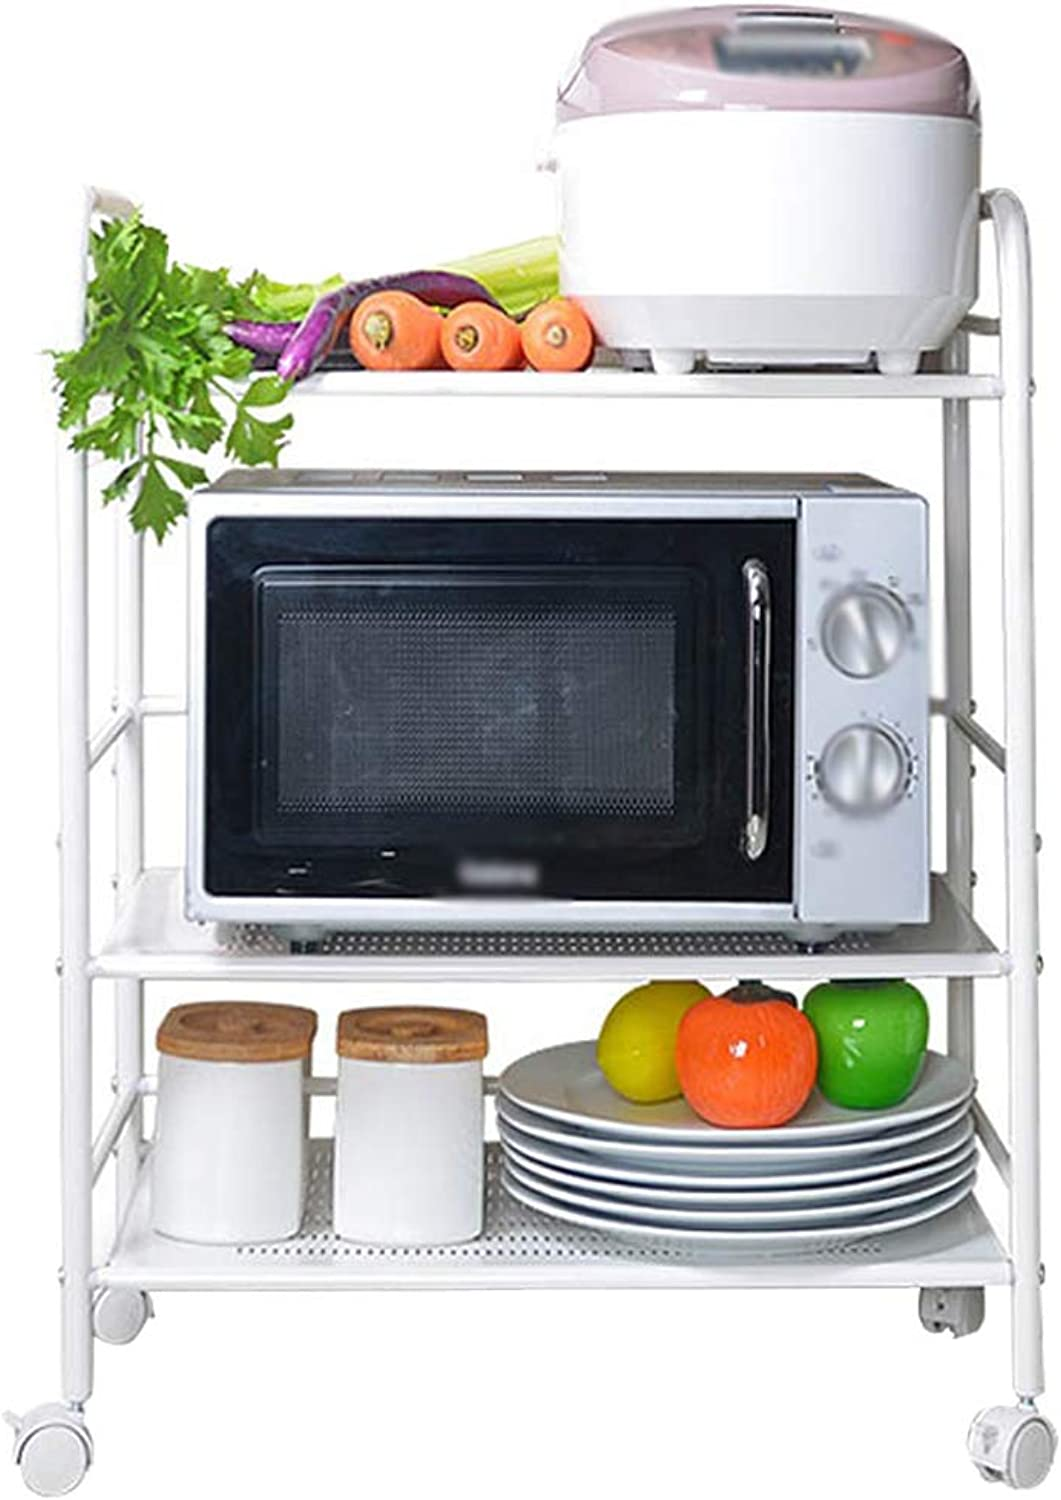 HUYP Iron Rack Microwave Oven Rack Kitchen Storage Rack Storage 3 Layer Oven Rack Removable